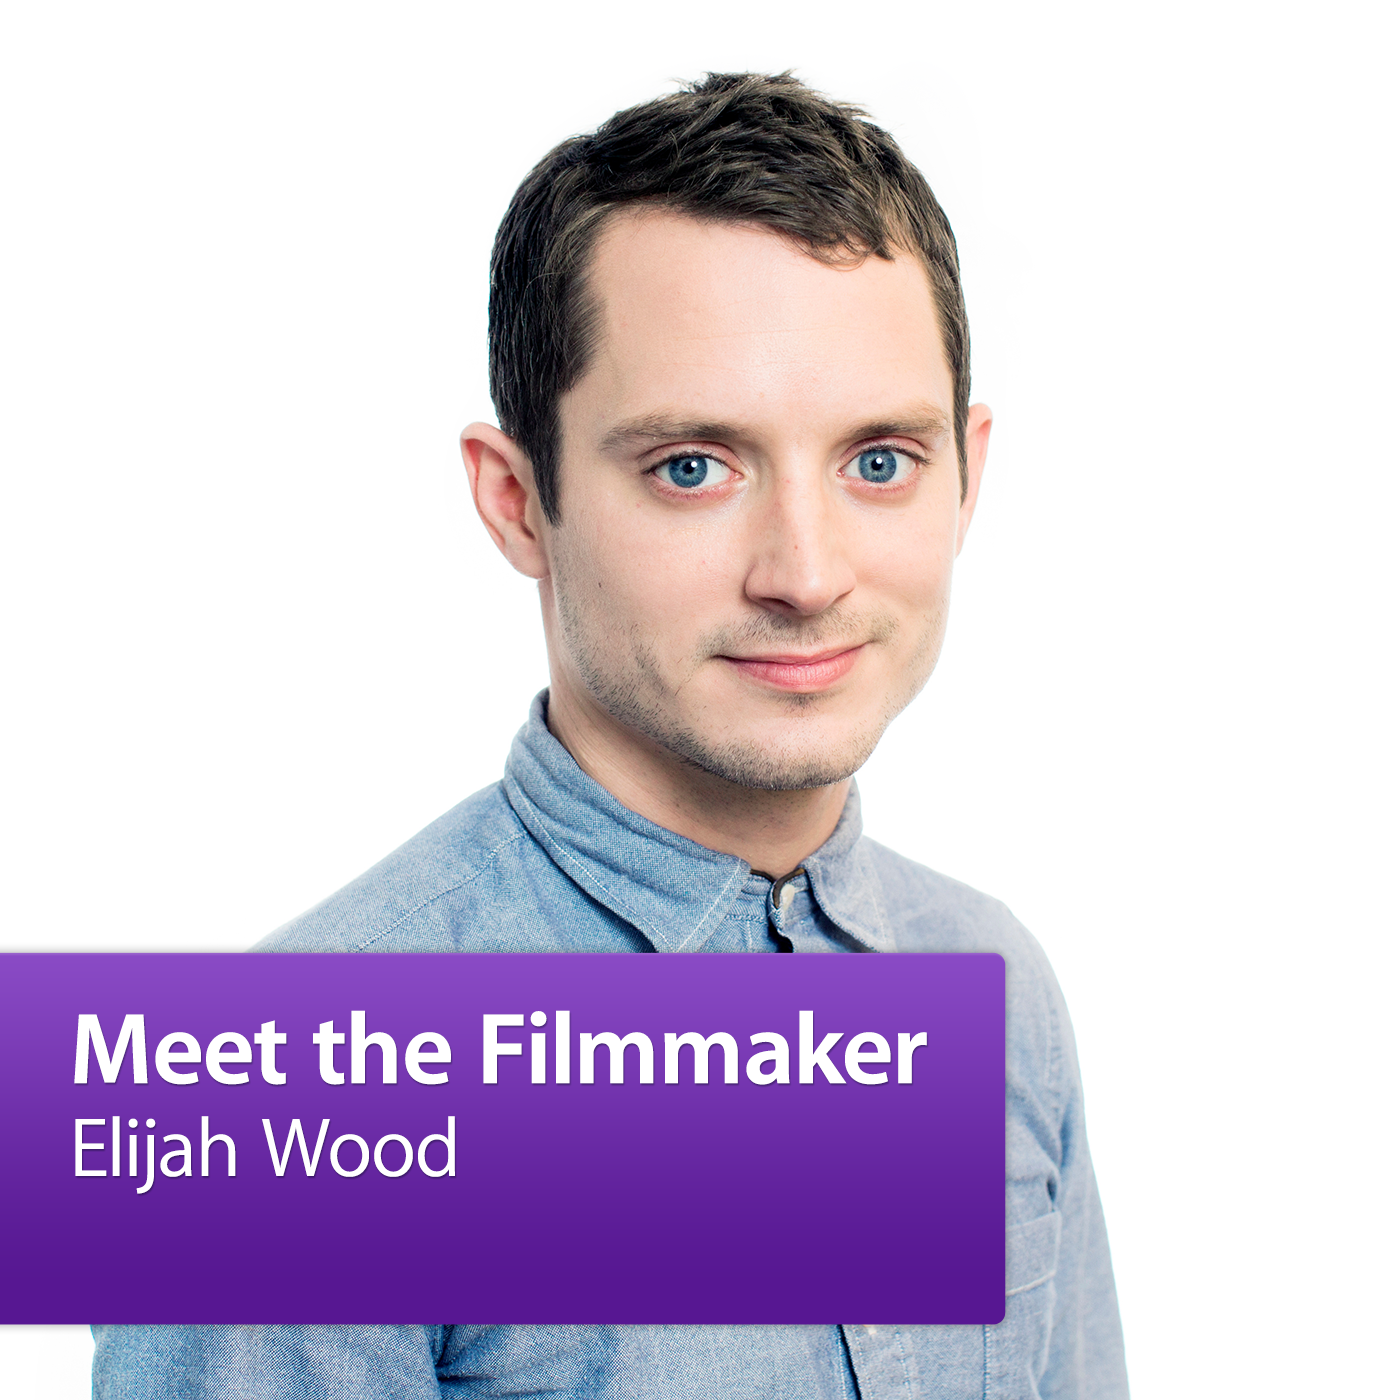 Elijah Wood: Meet the Filmmaker